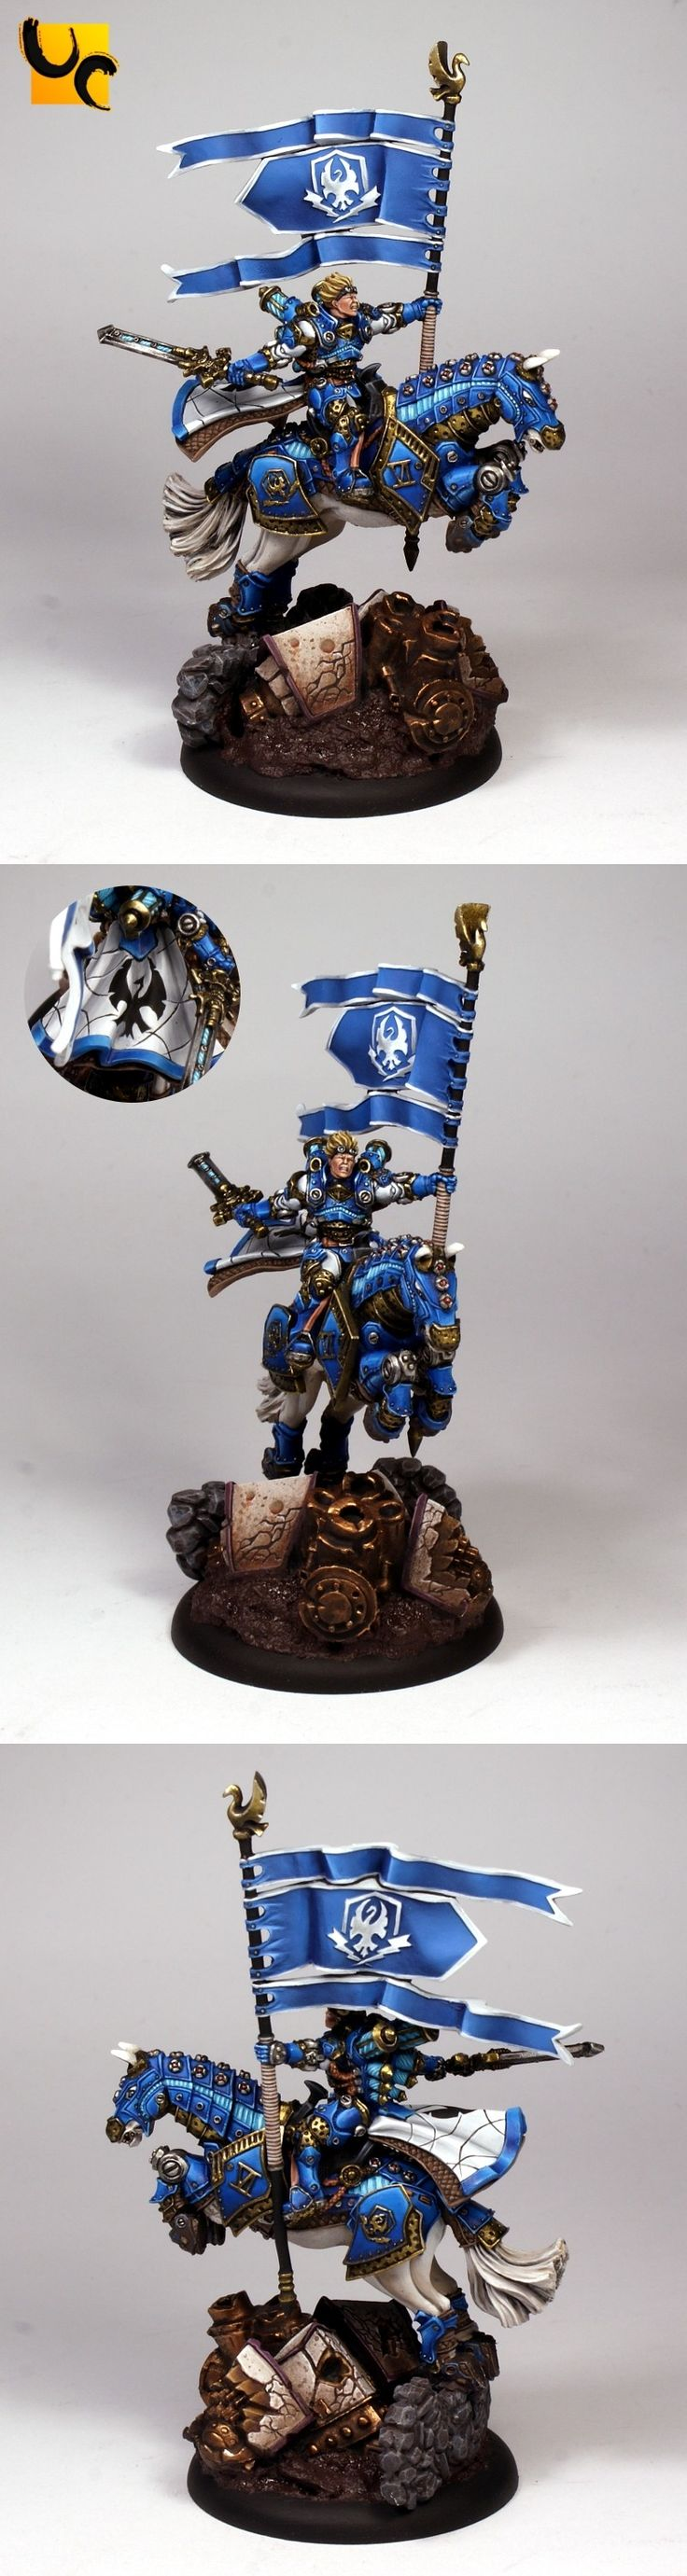 CoolMiniOrNot - Lord General Coleman Stryker by UnlimitedColours